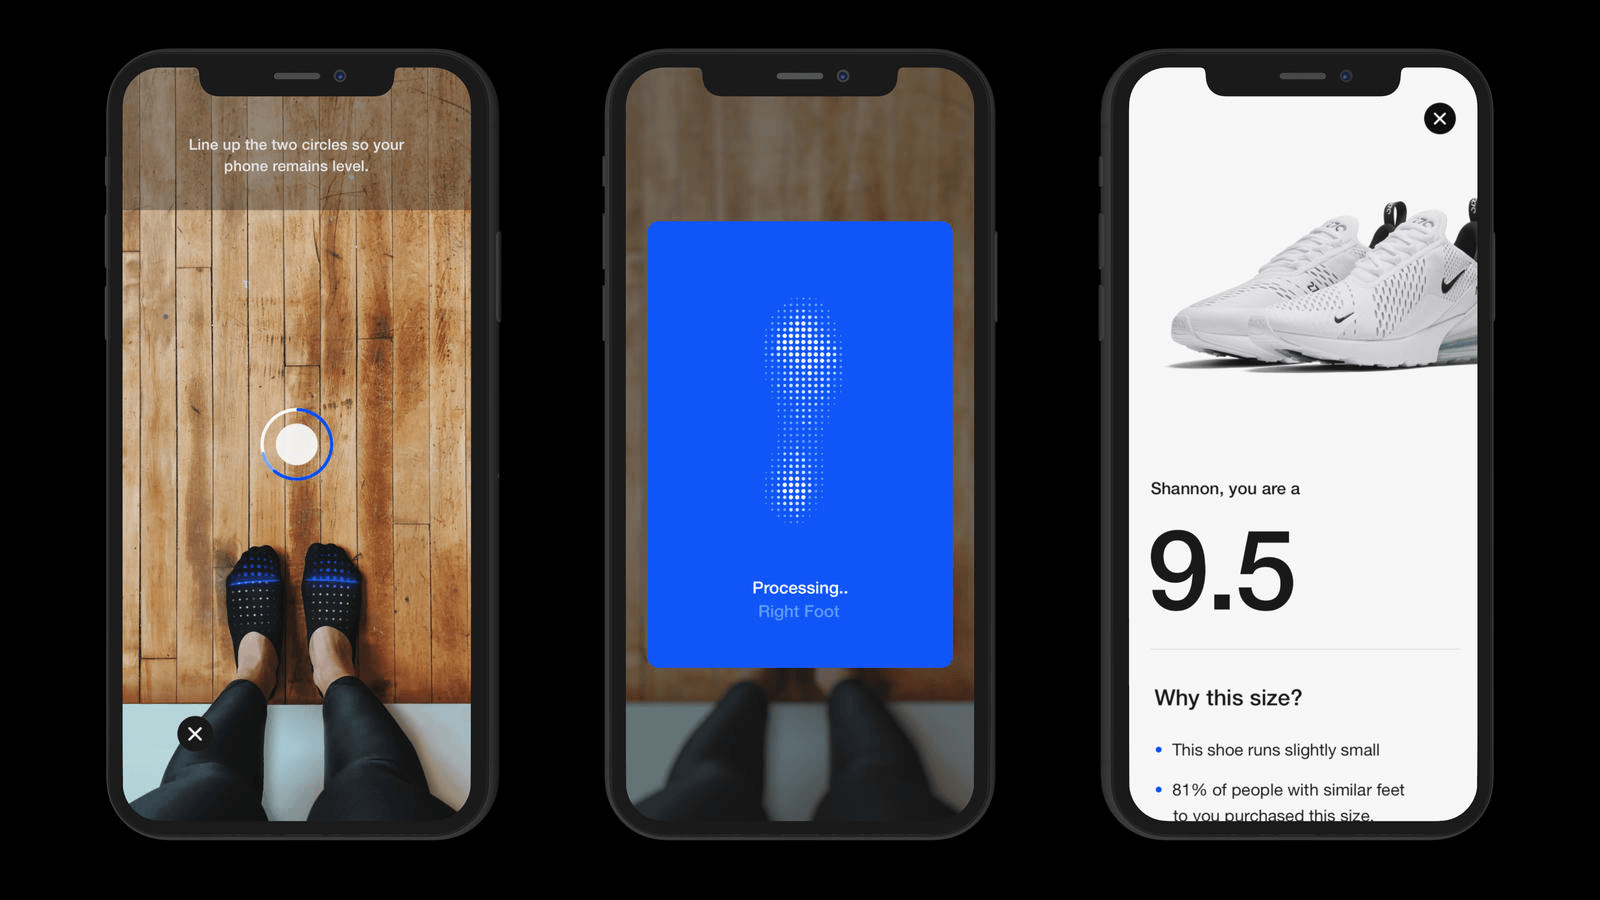 Nike: mobile scanning tool for foot measurement